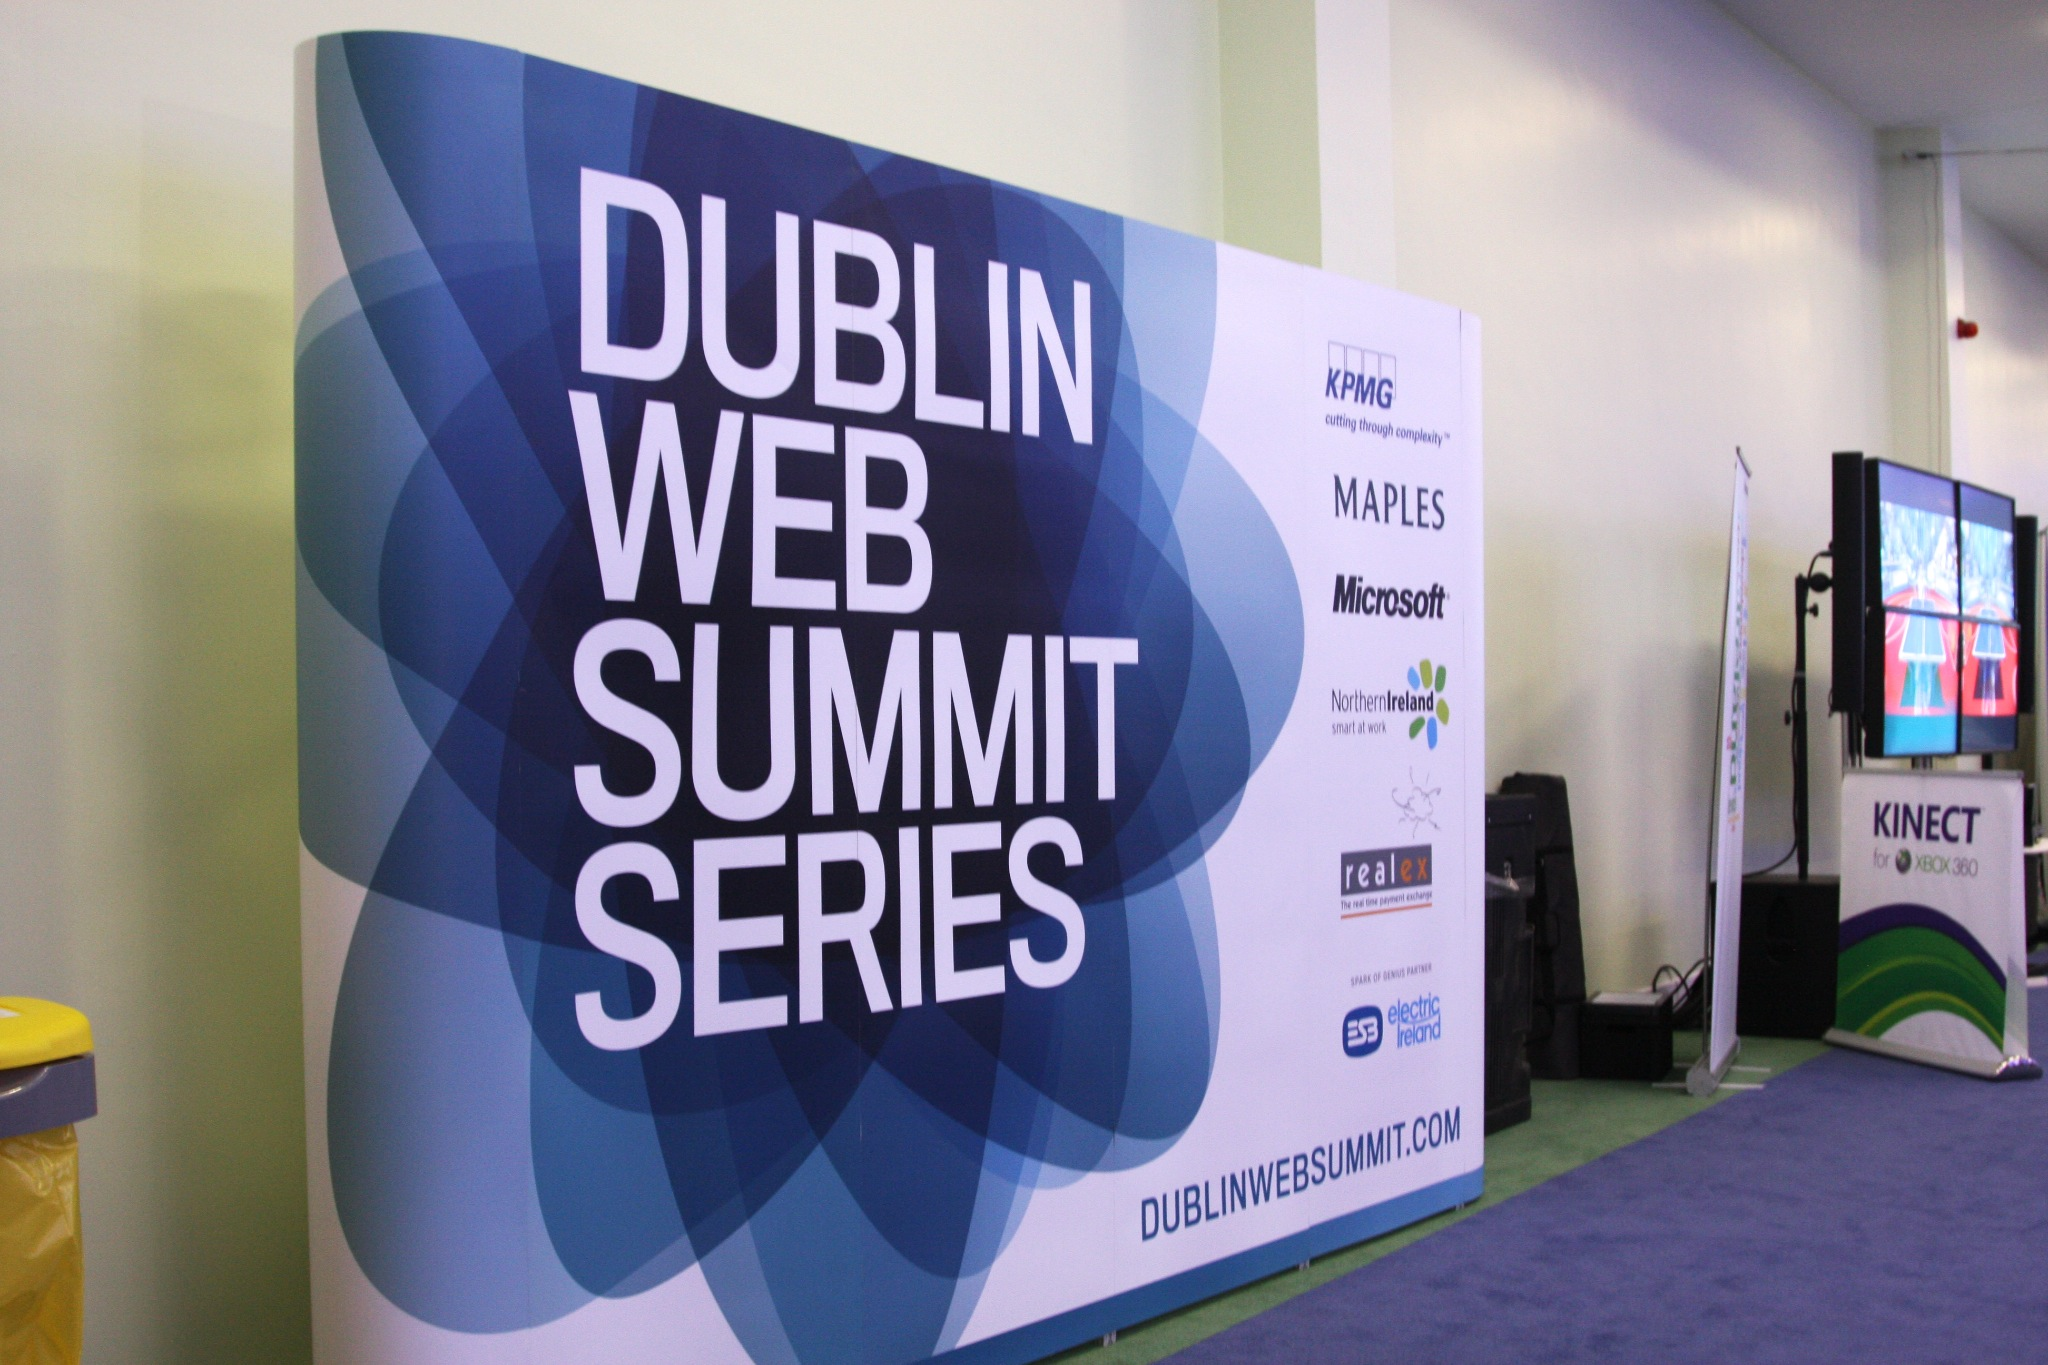 Dublin Web Summit Series